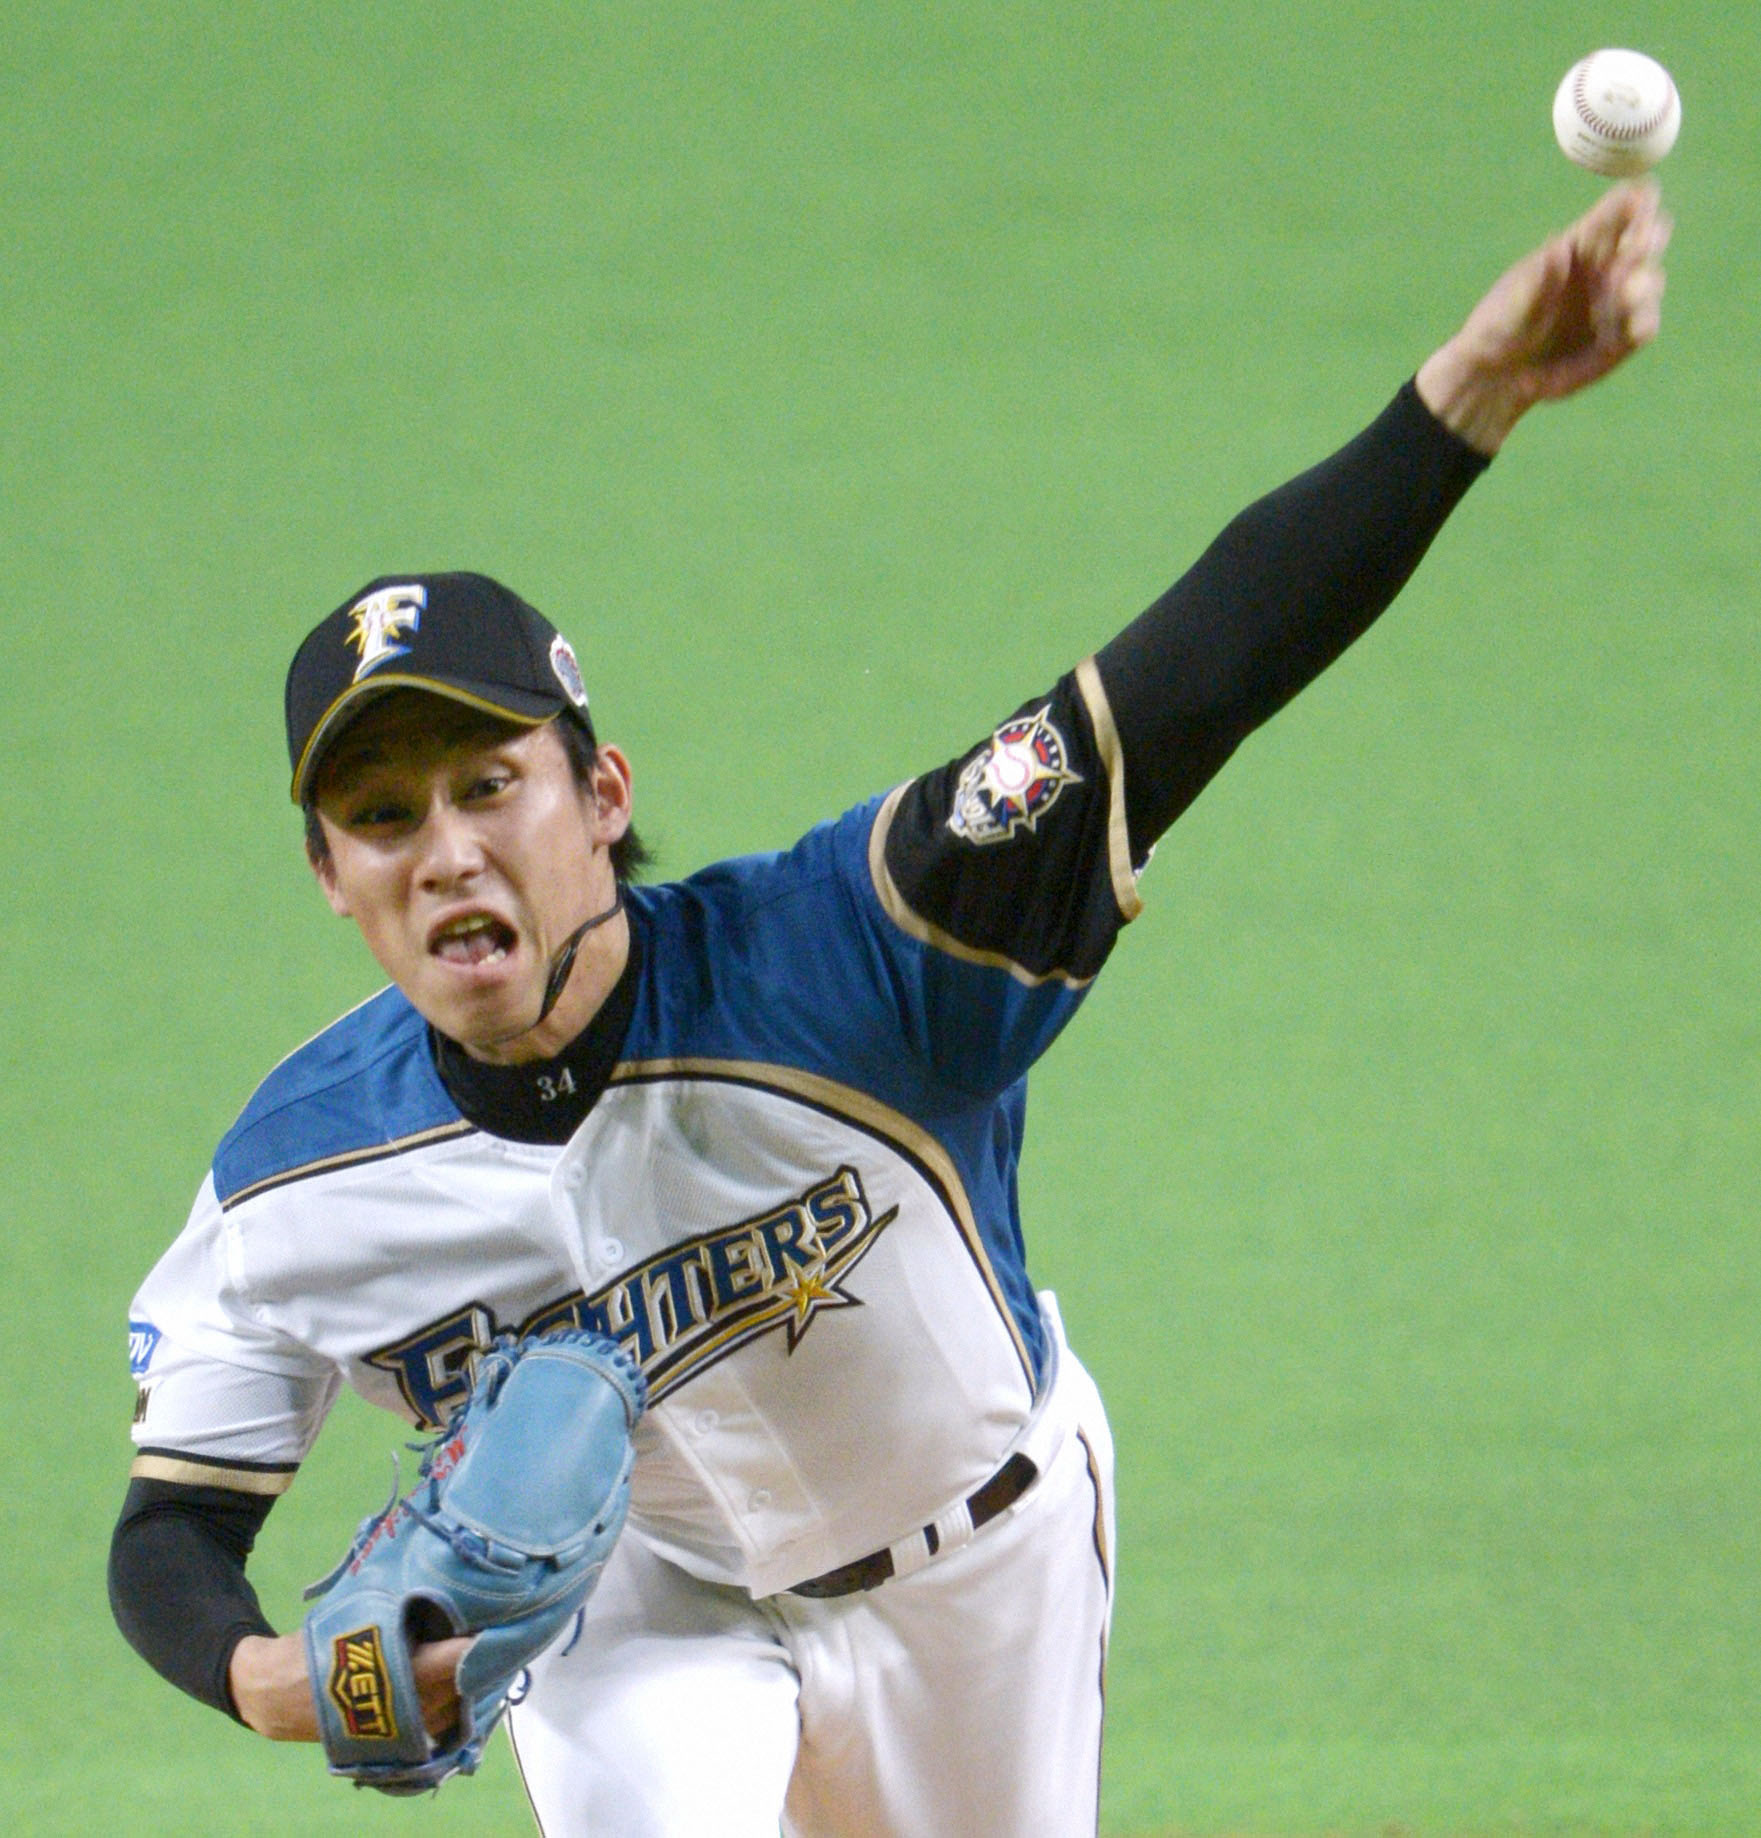 Yoshikawa's MVP award puts pitcher in elite company